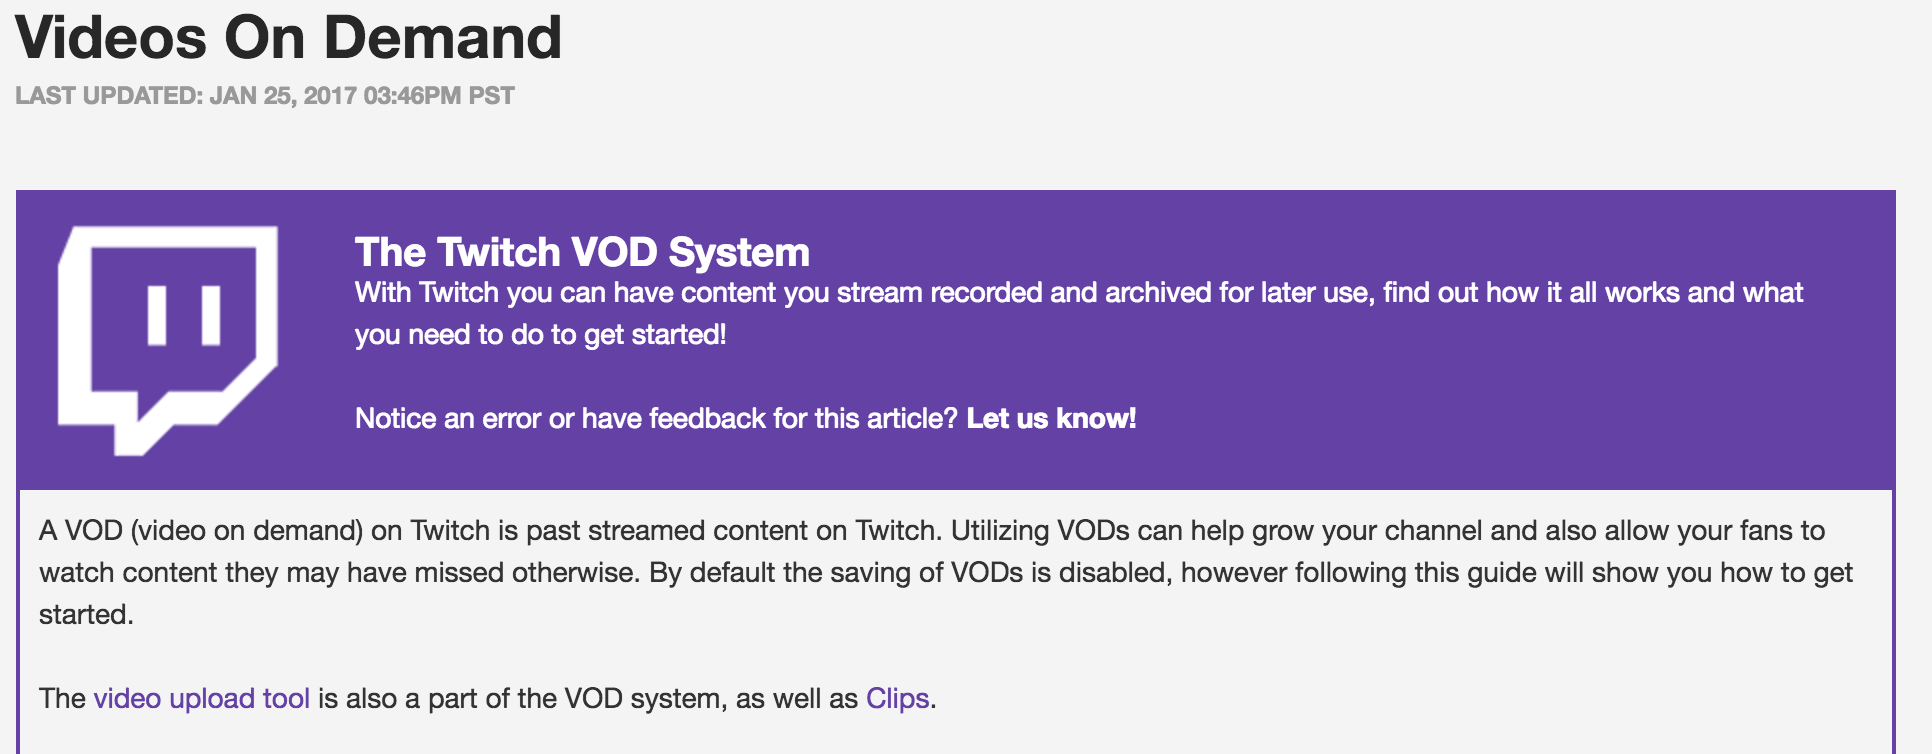 Twitch Video On Demand (Photo: Twitch)